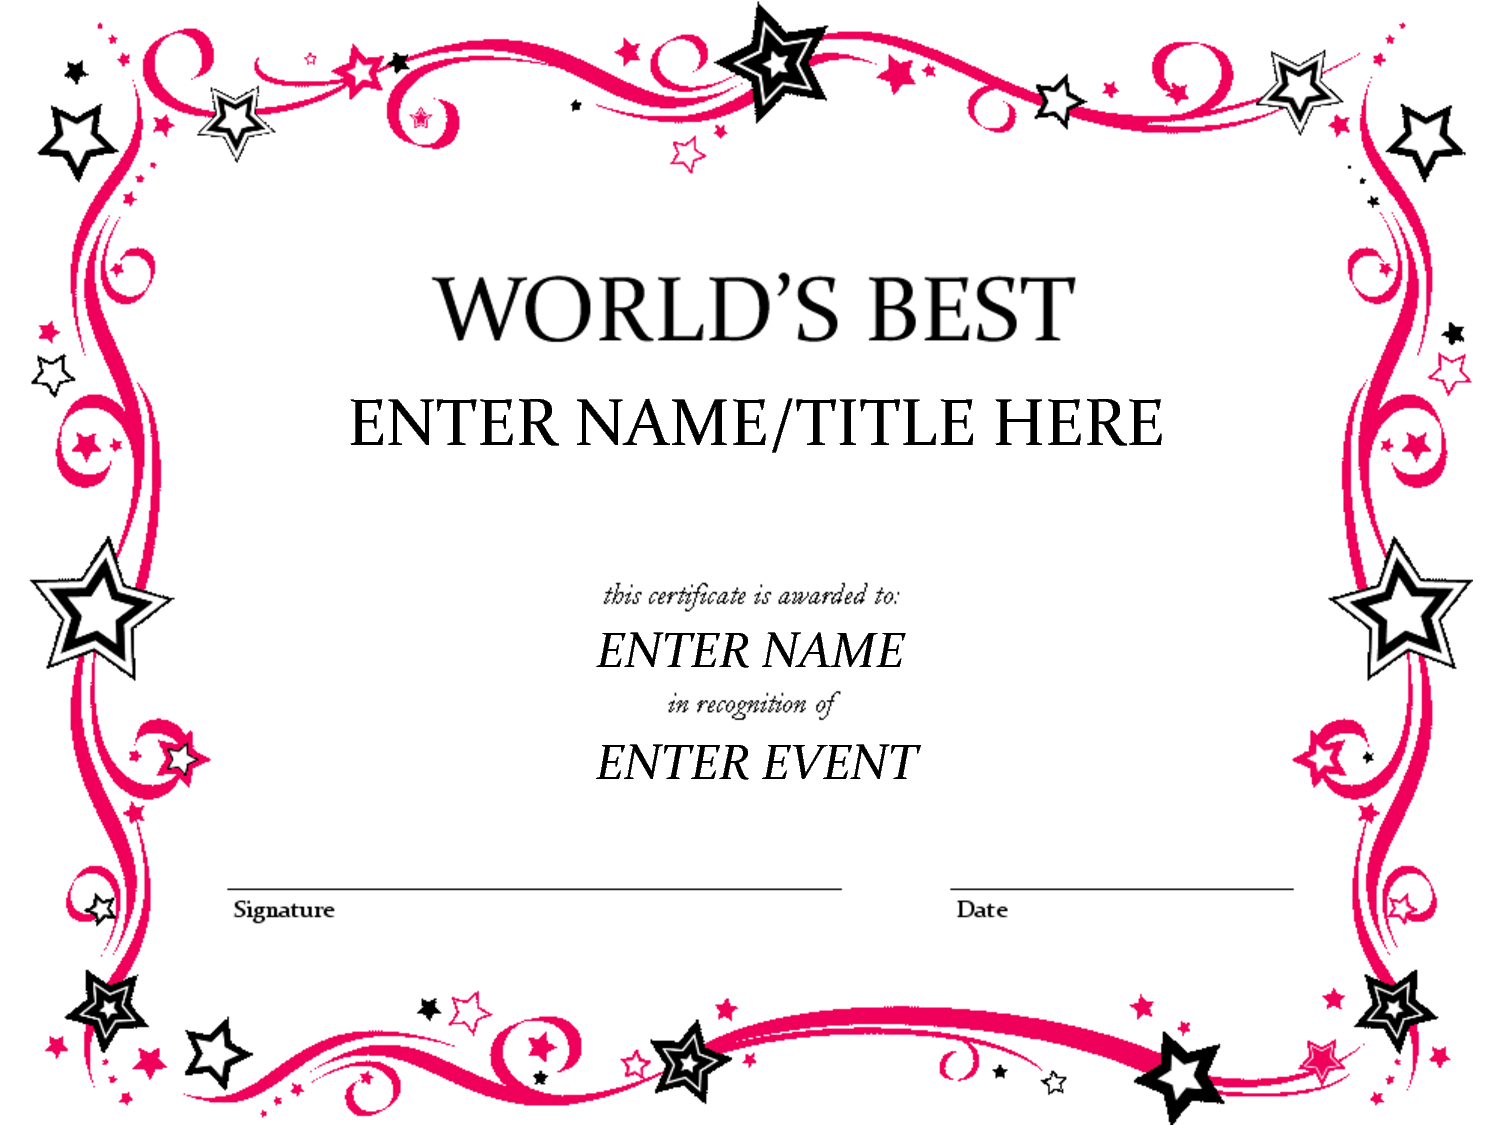 Free funny award certificates templates worlds best custom award free funny award certificates templates worlds best custom award certificate template yadclub Choice Image